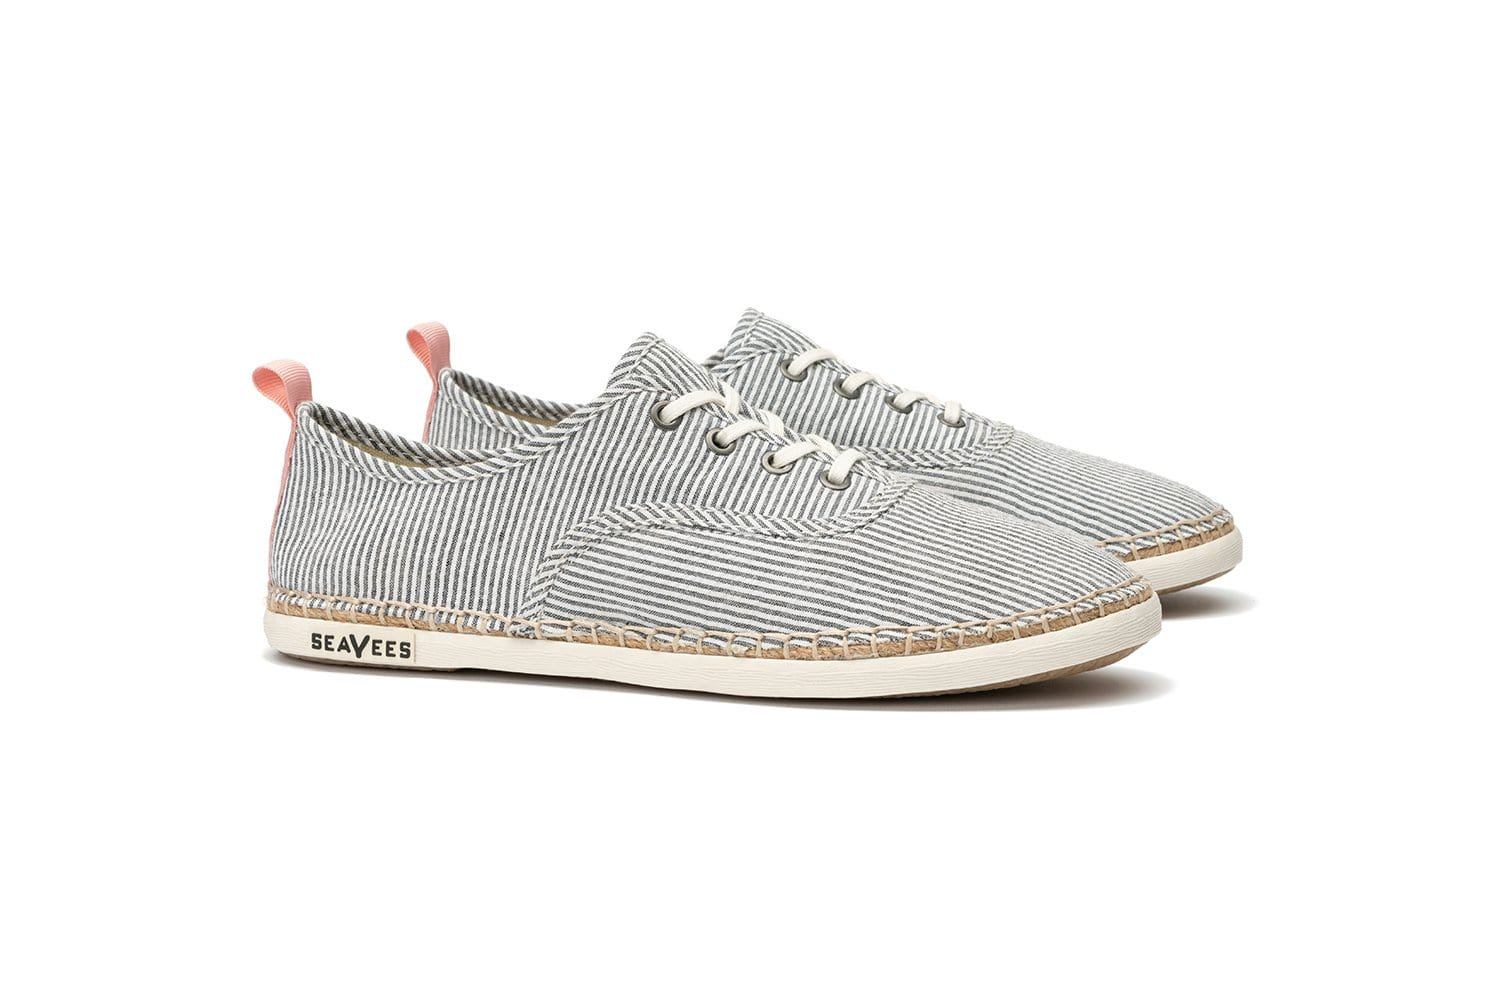 performance sportswear shoes for cheap so cheap Womens Sorrento Sand Shoe - Midnight | SeaVees